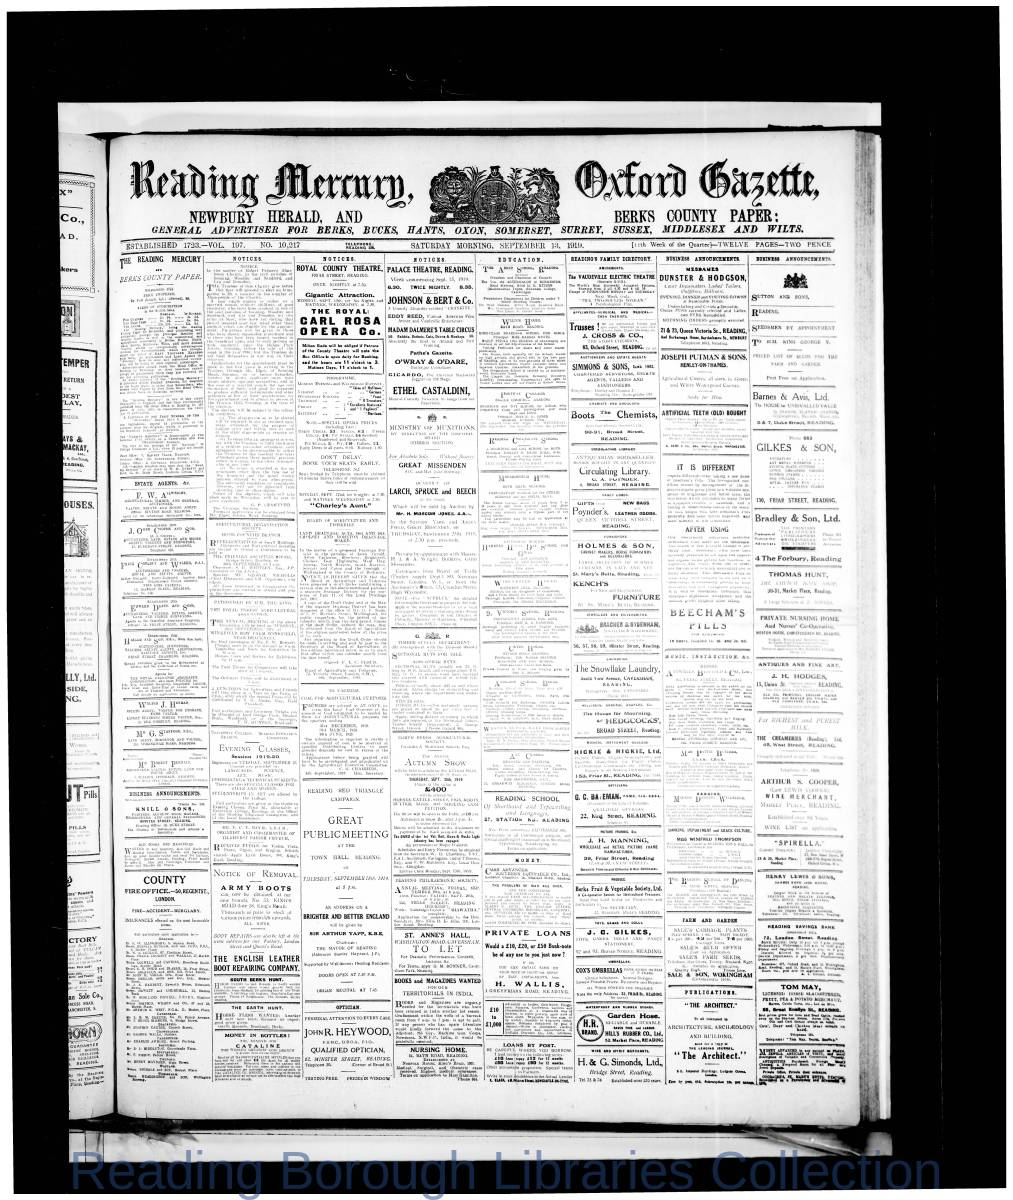 Reading Mercury Oxford Gazette Saturday, September 13, 1919. Pg 1